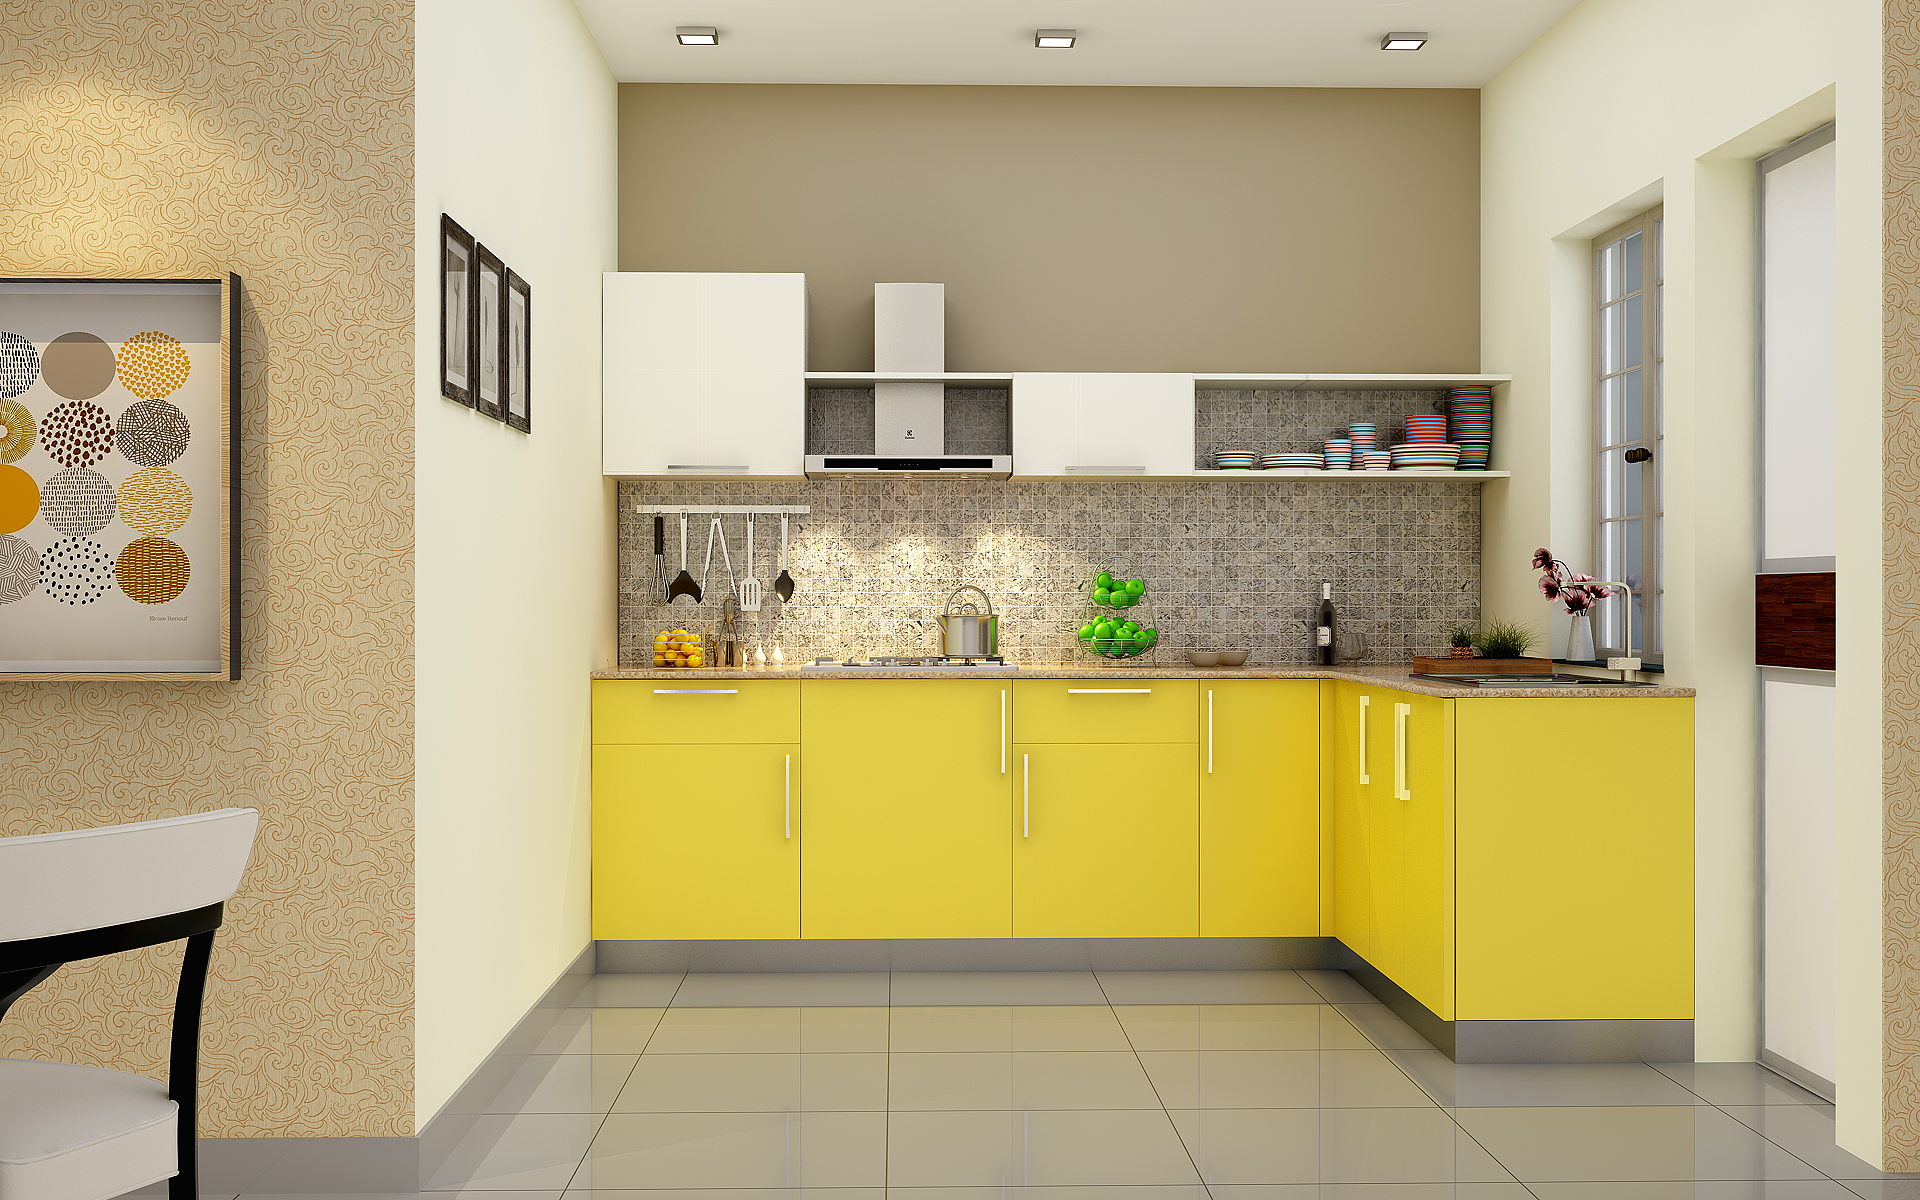 L Shaped Modular Kitchen Designs & Prices - HomeLane India